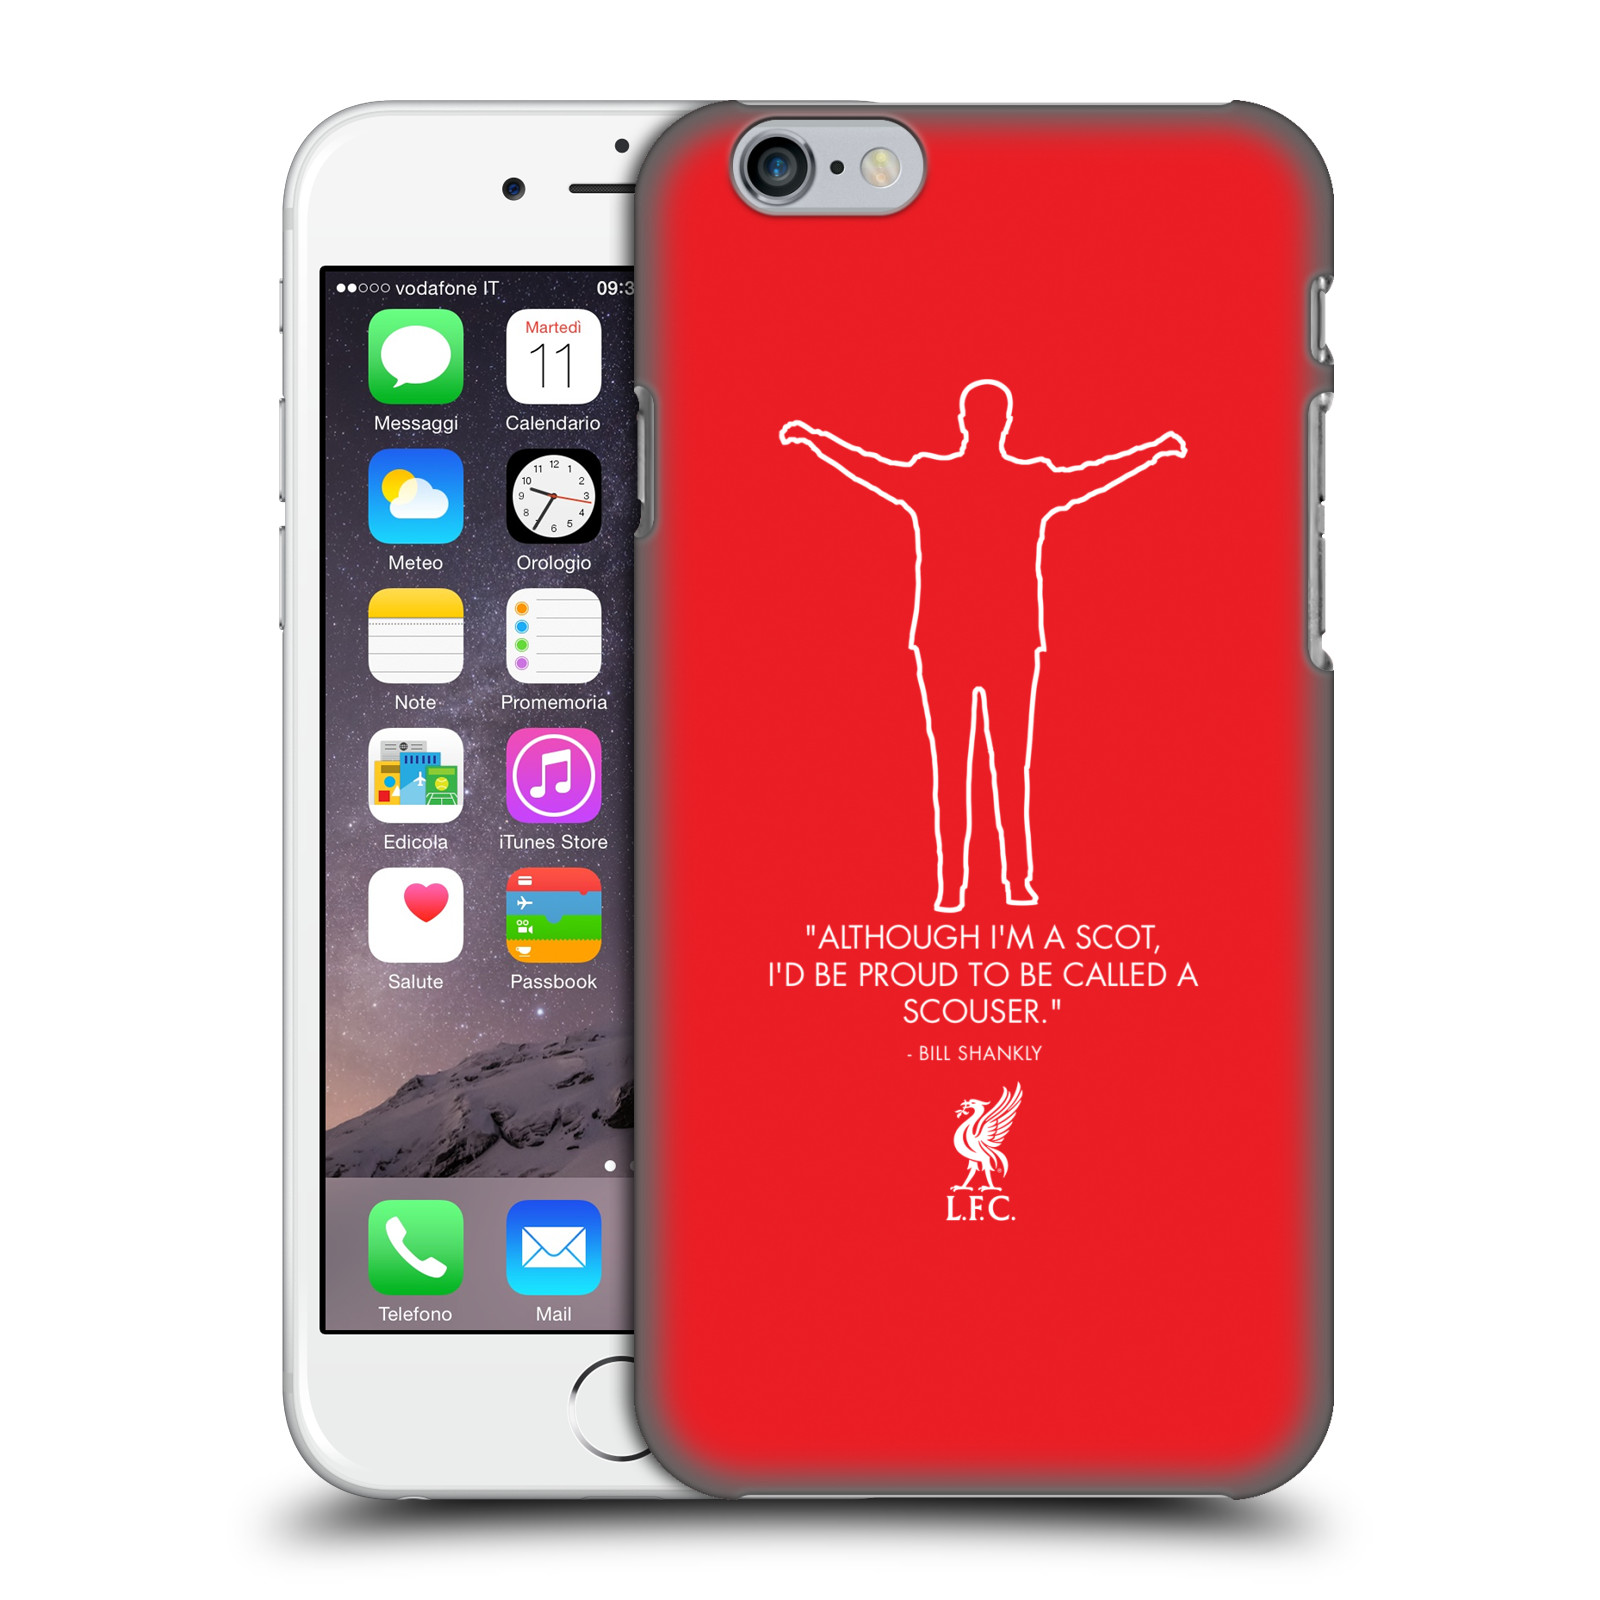 Liverpool FC LFC Bill Shankly Quotes-Scouse Red